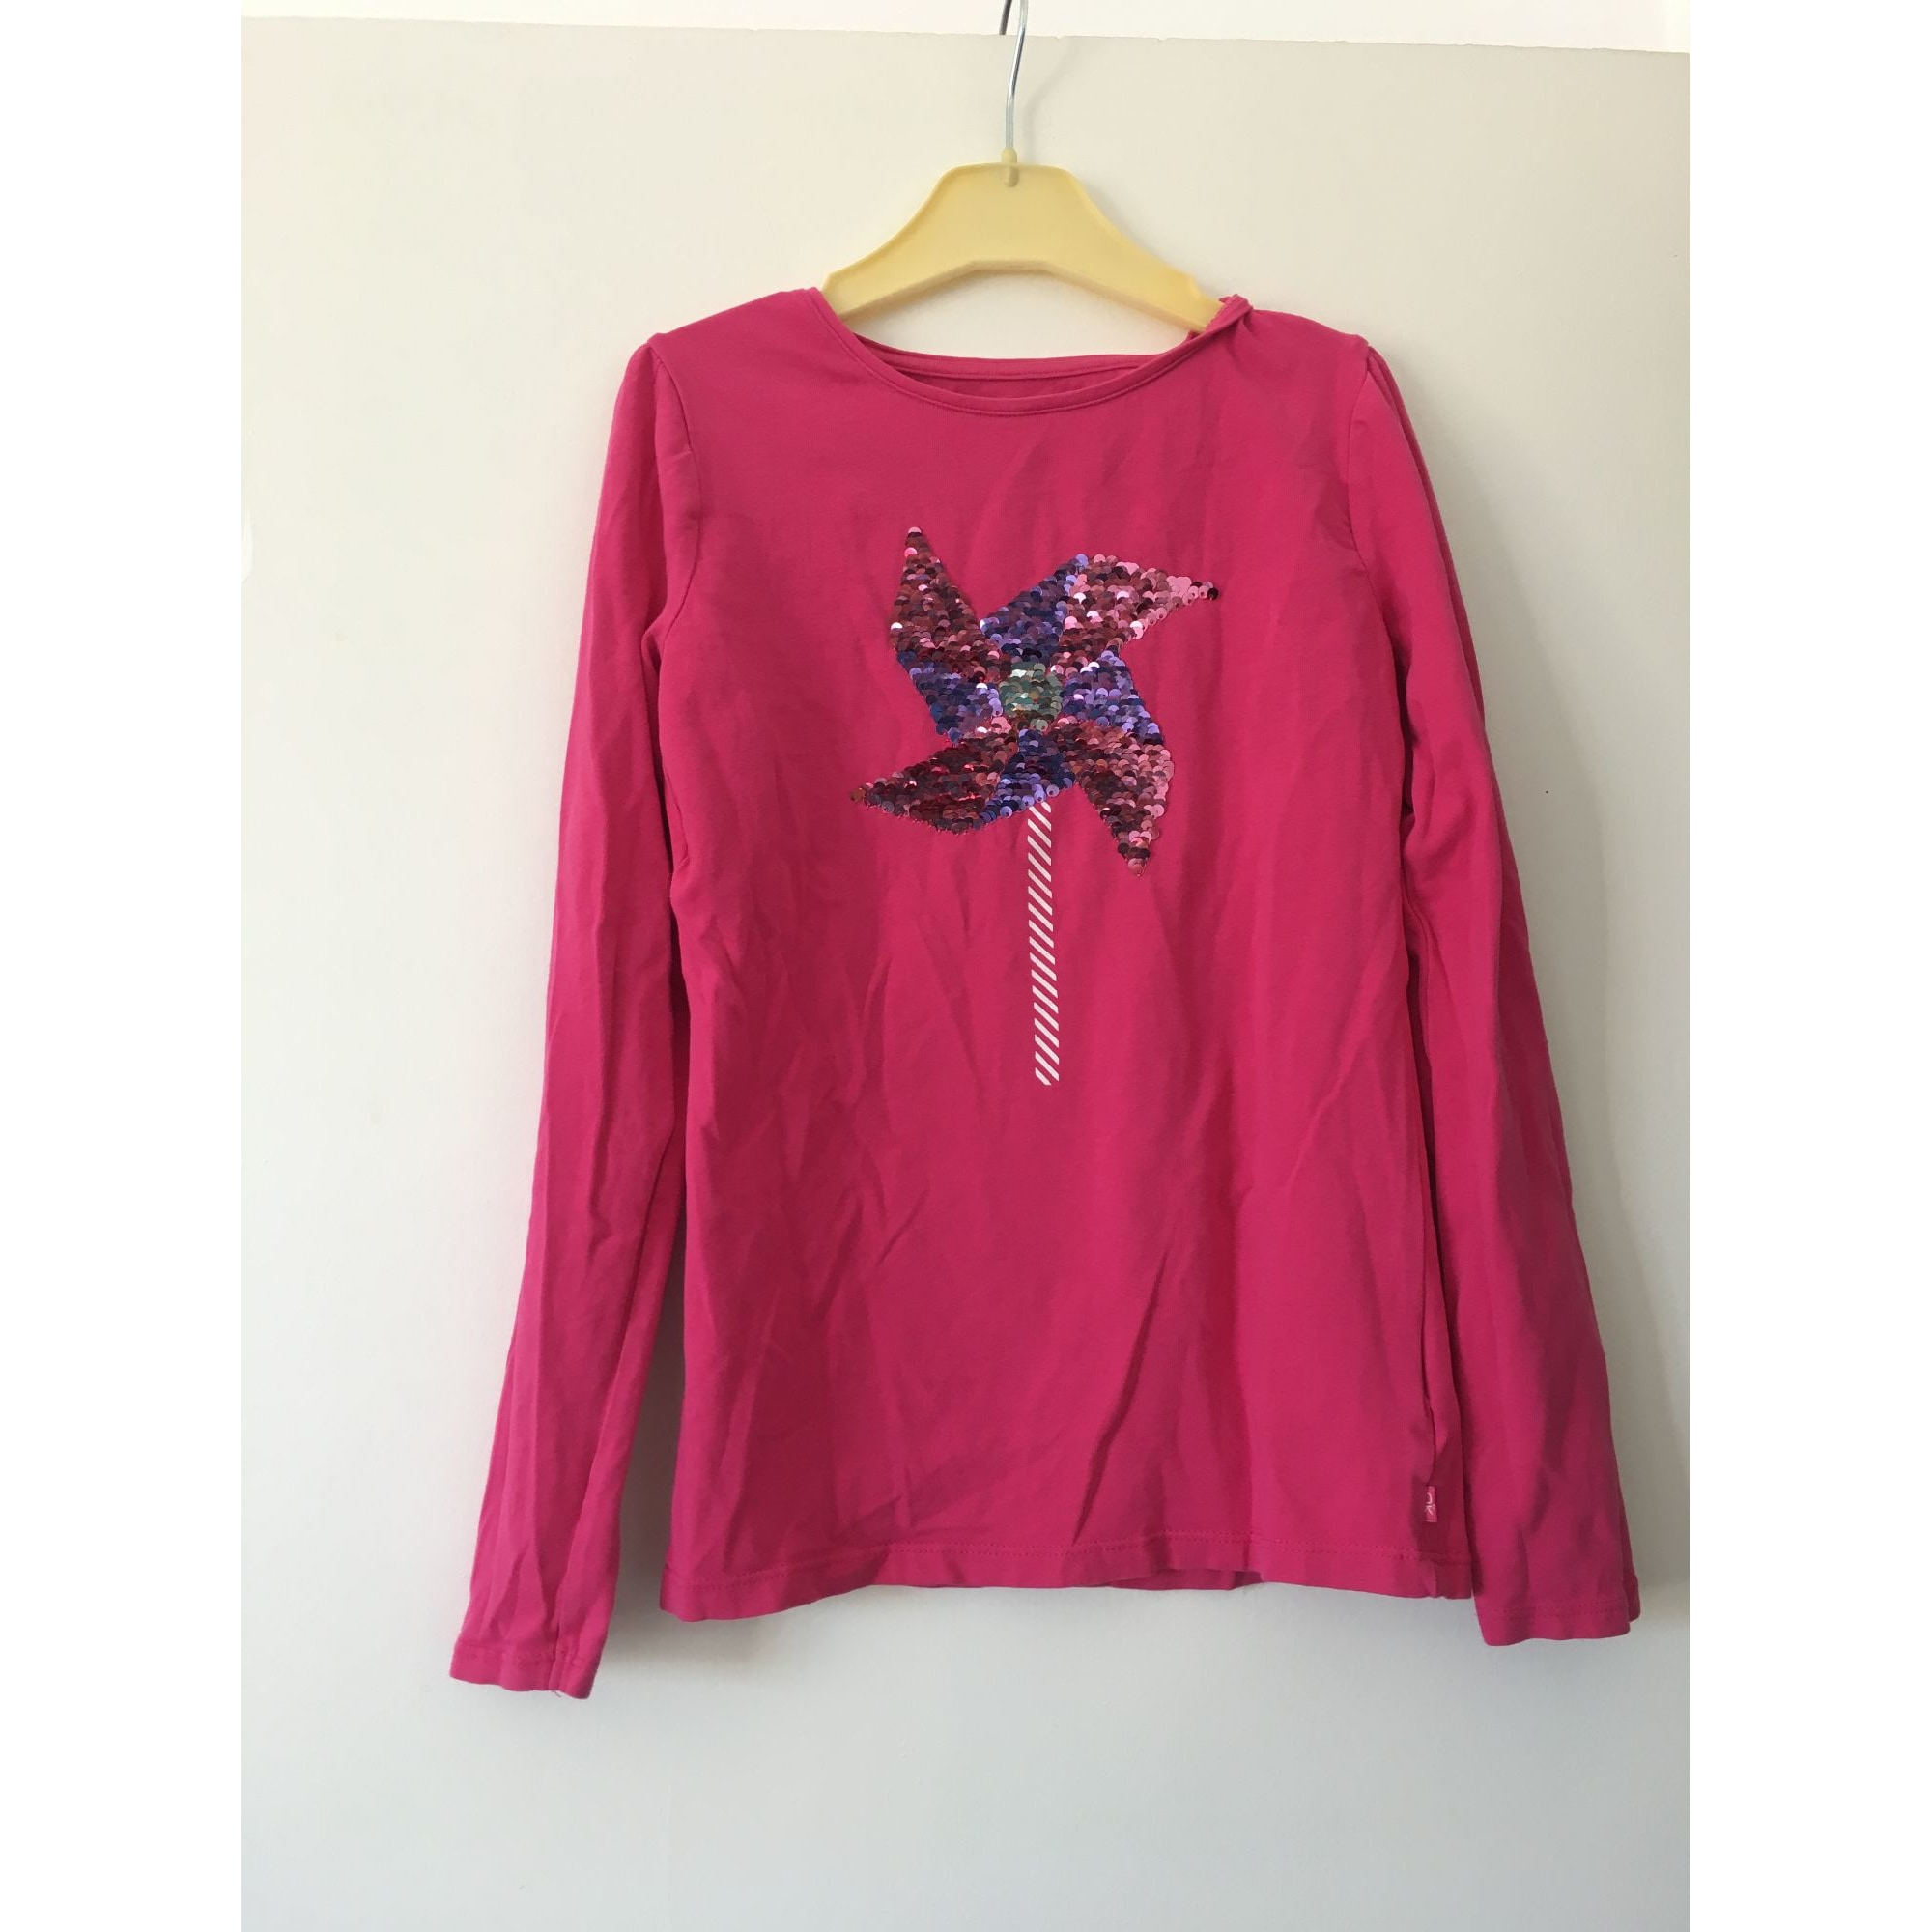 Top, Tee-shirt OKAÏDI Rose, fuschia, vieux rose